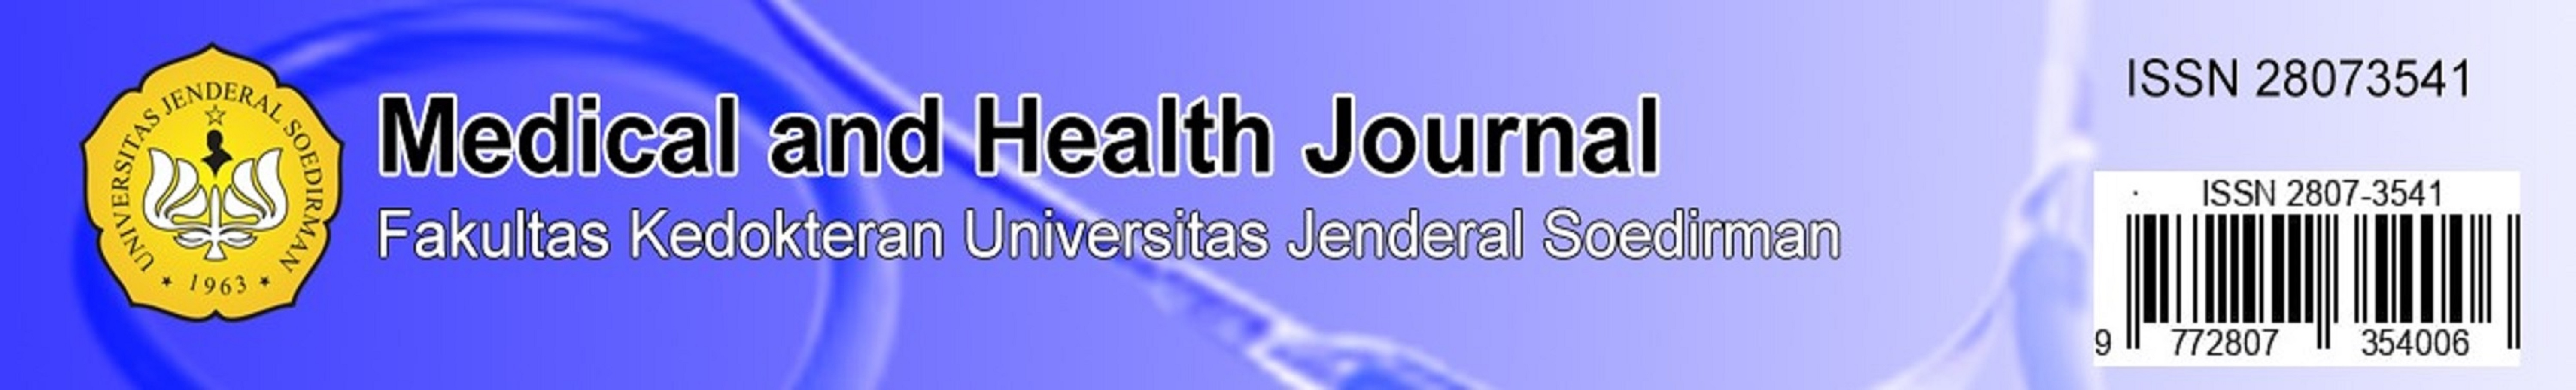 MEDICAL AND HEALTH JOURNAL